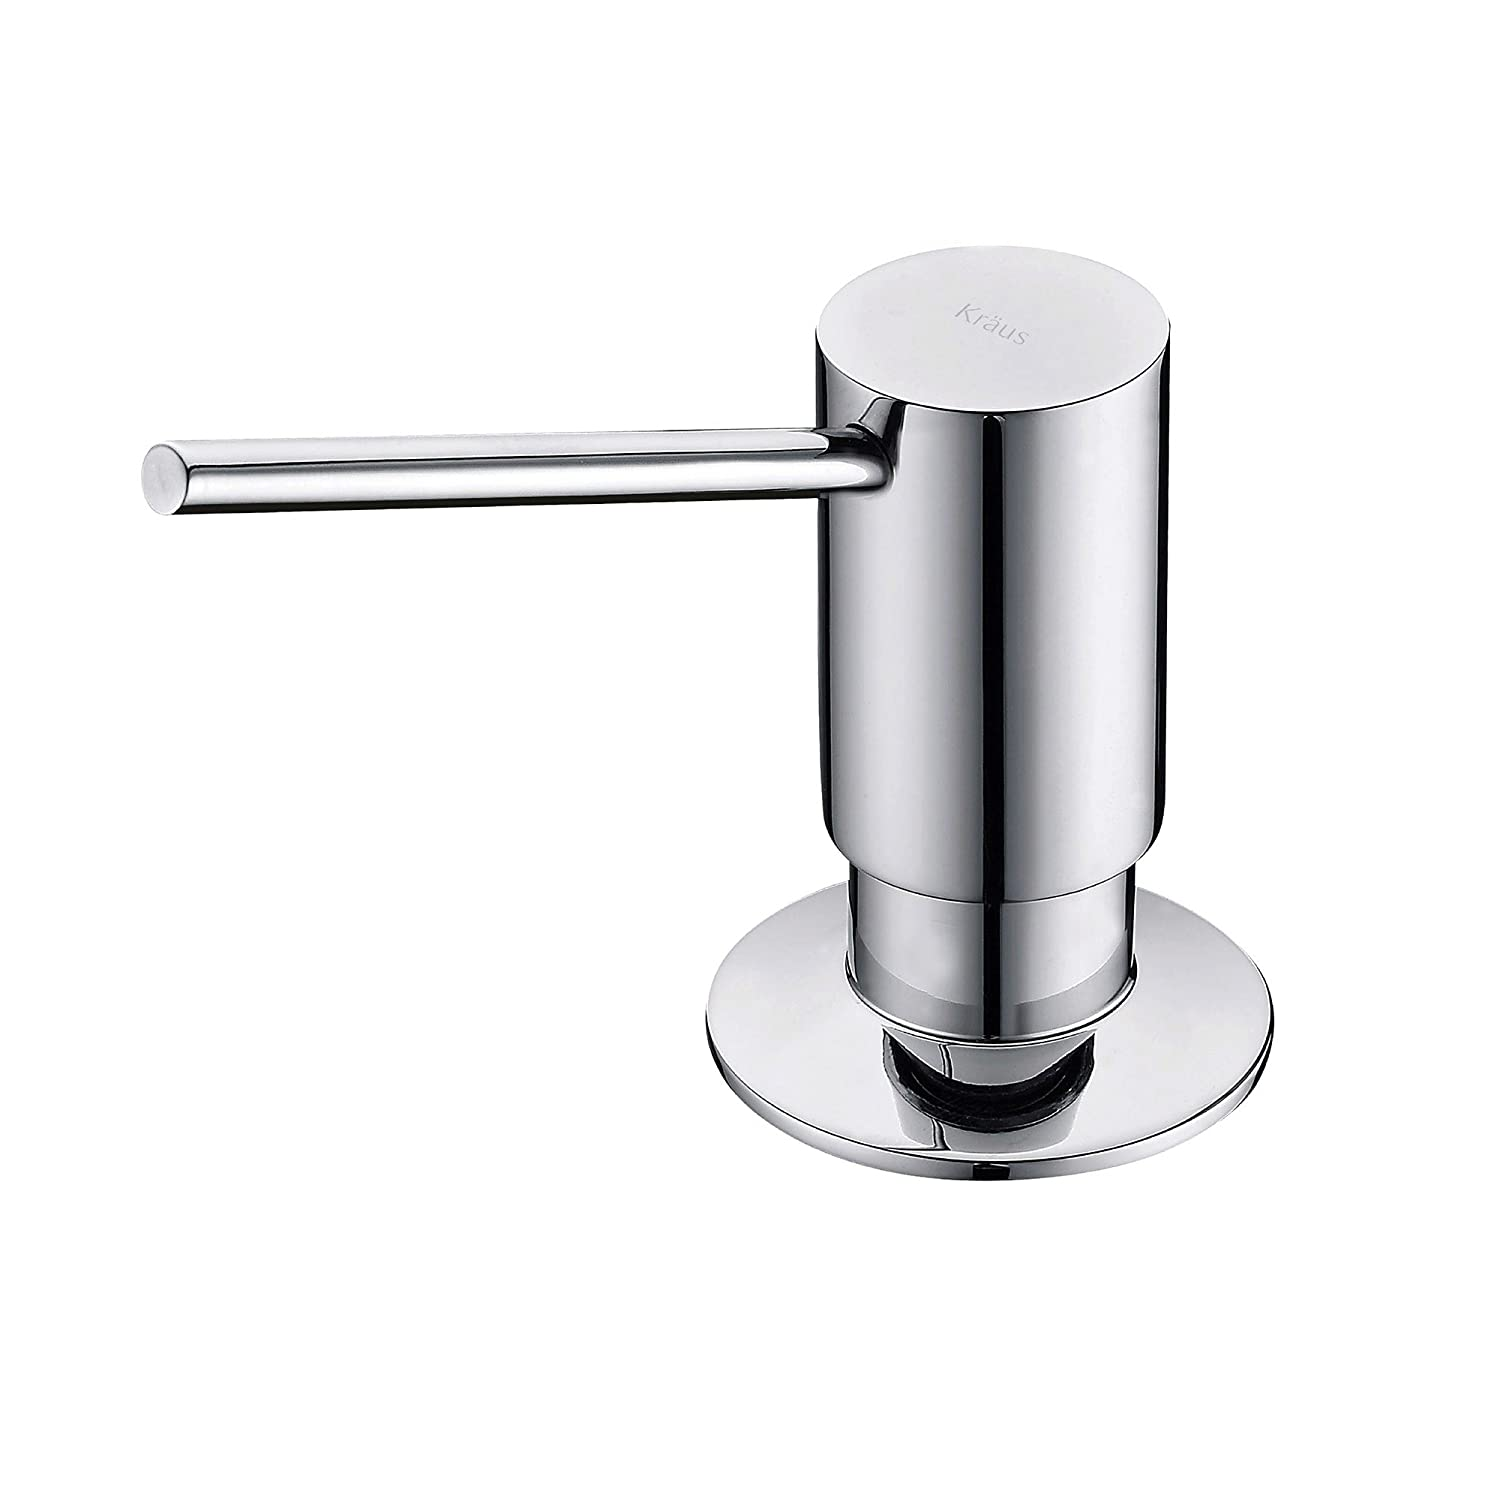 Kraus KSD-41CH Modern Soap Dispenser, Chrome